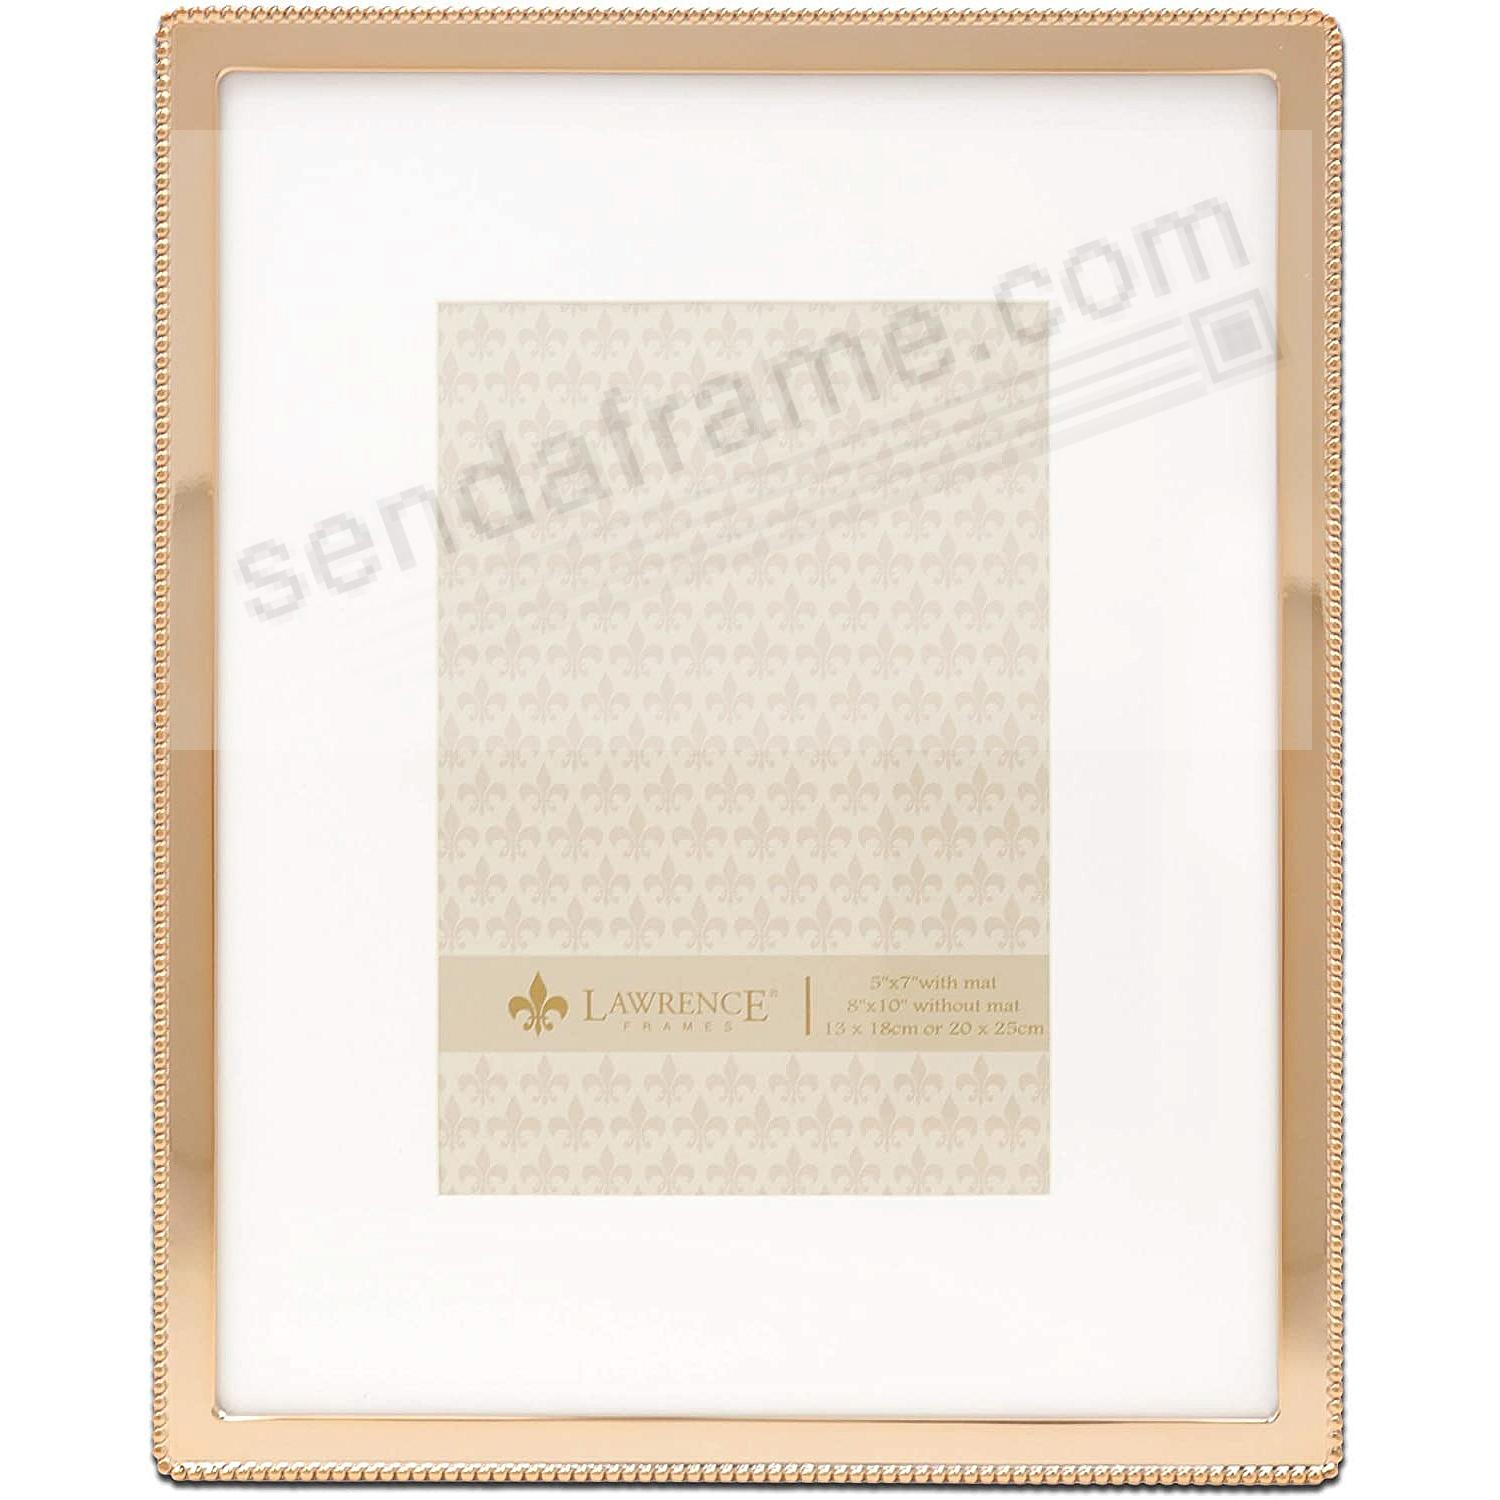 Beaded Trim Gold finish 8x10/5x7 frame by Lawrence®